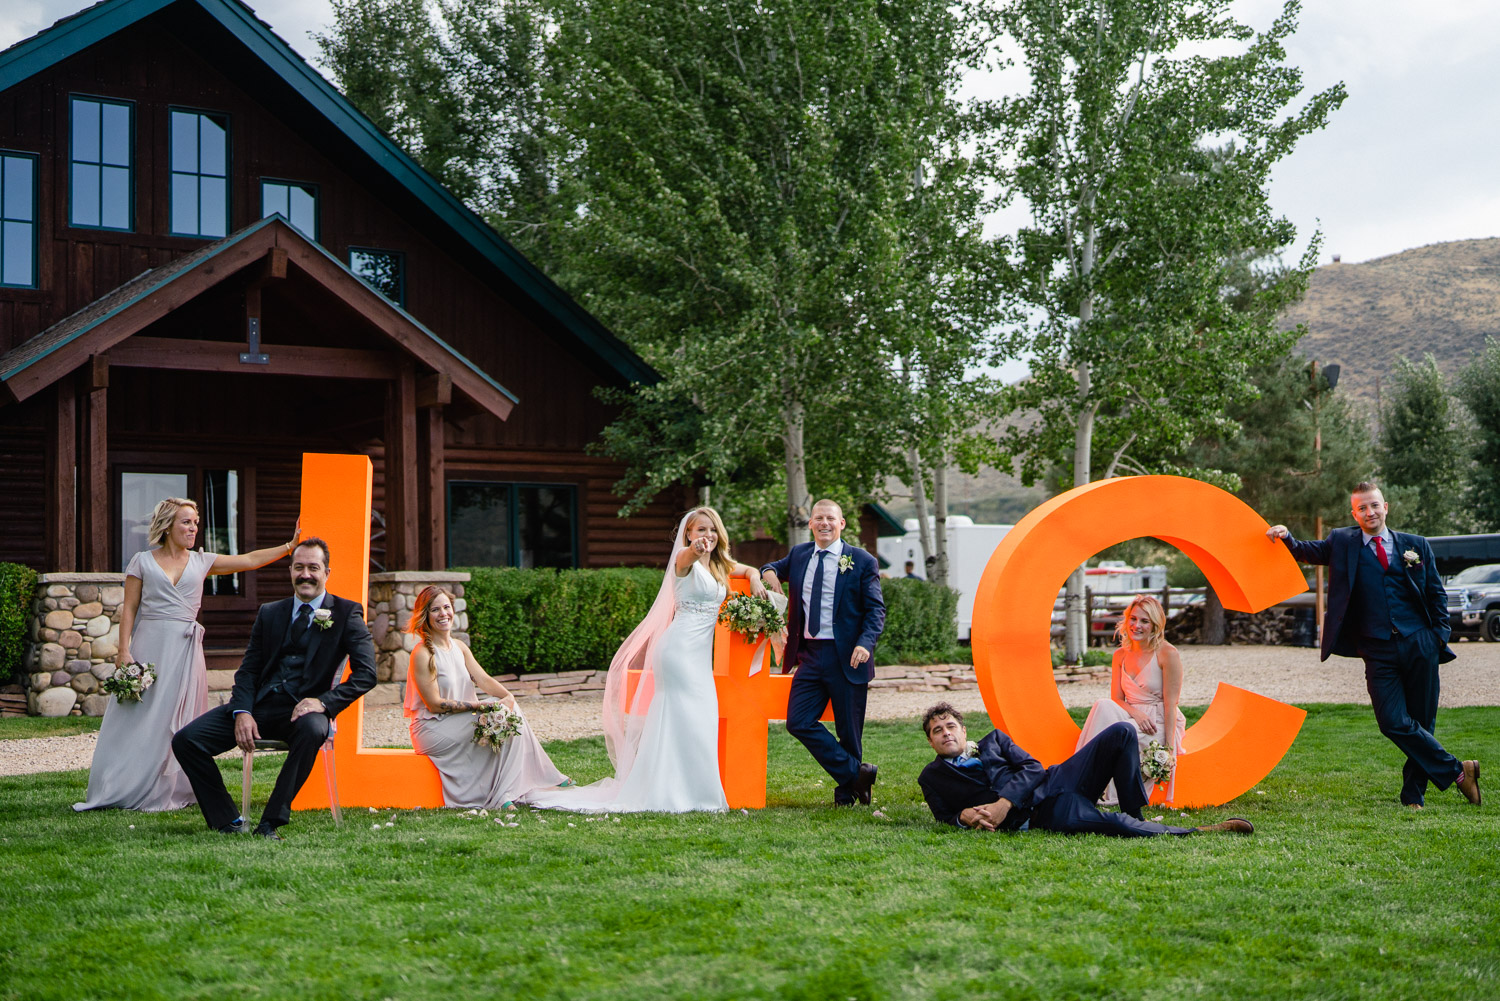 wedding party posing on outdoor lettering decoration in yard park city wedding